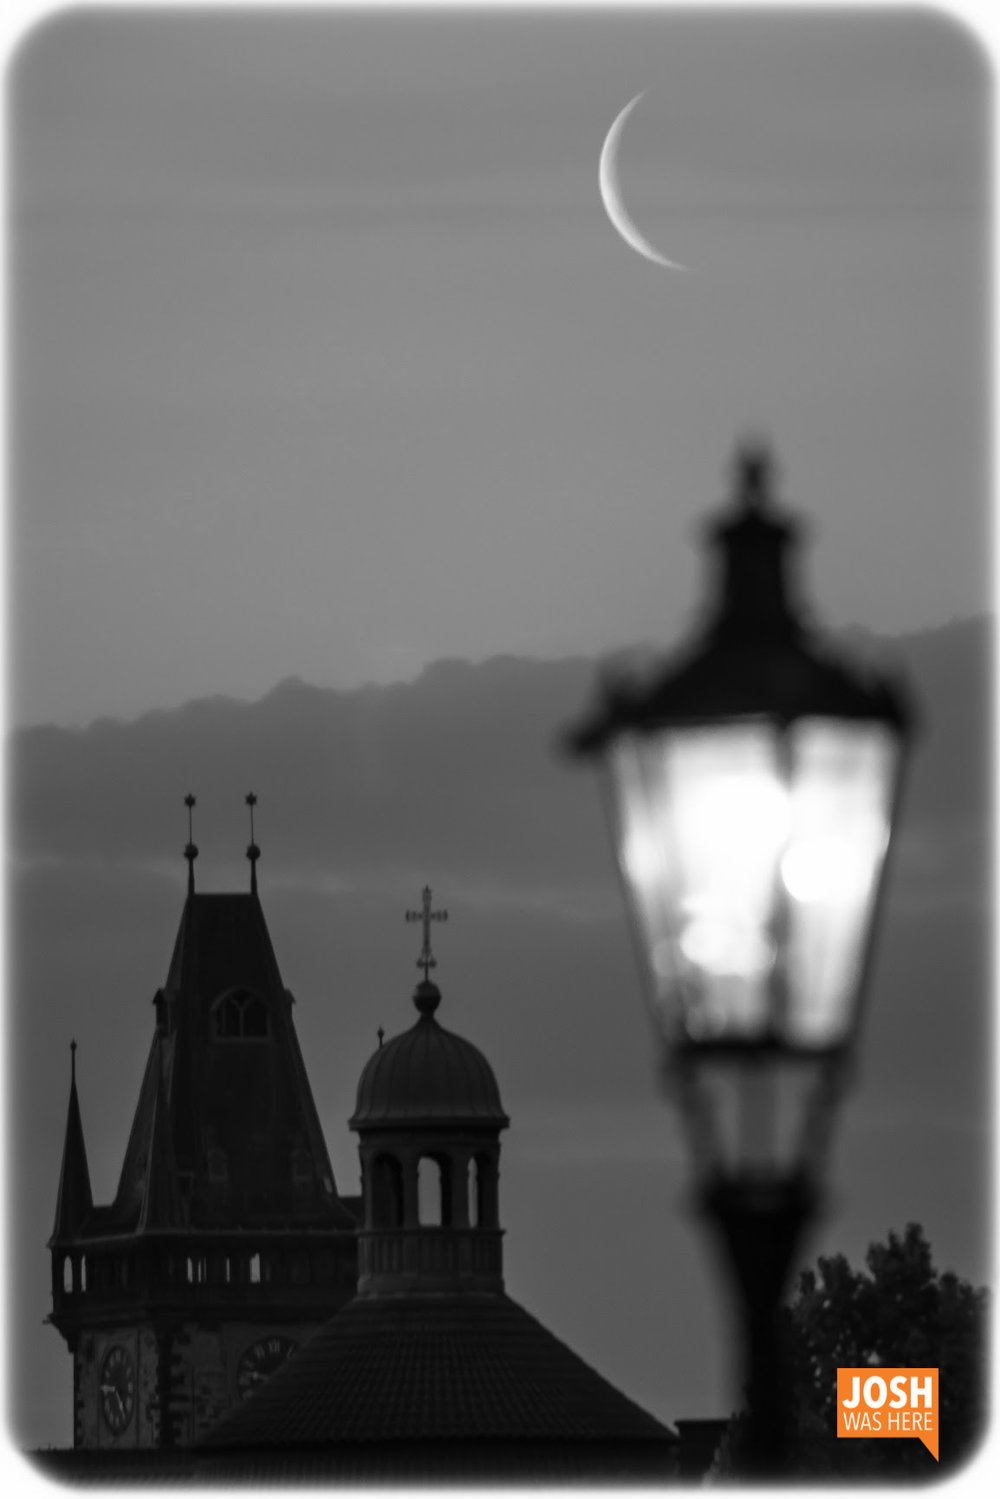 Moonrise, from Charles Bridge / Karlův most